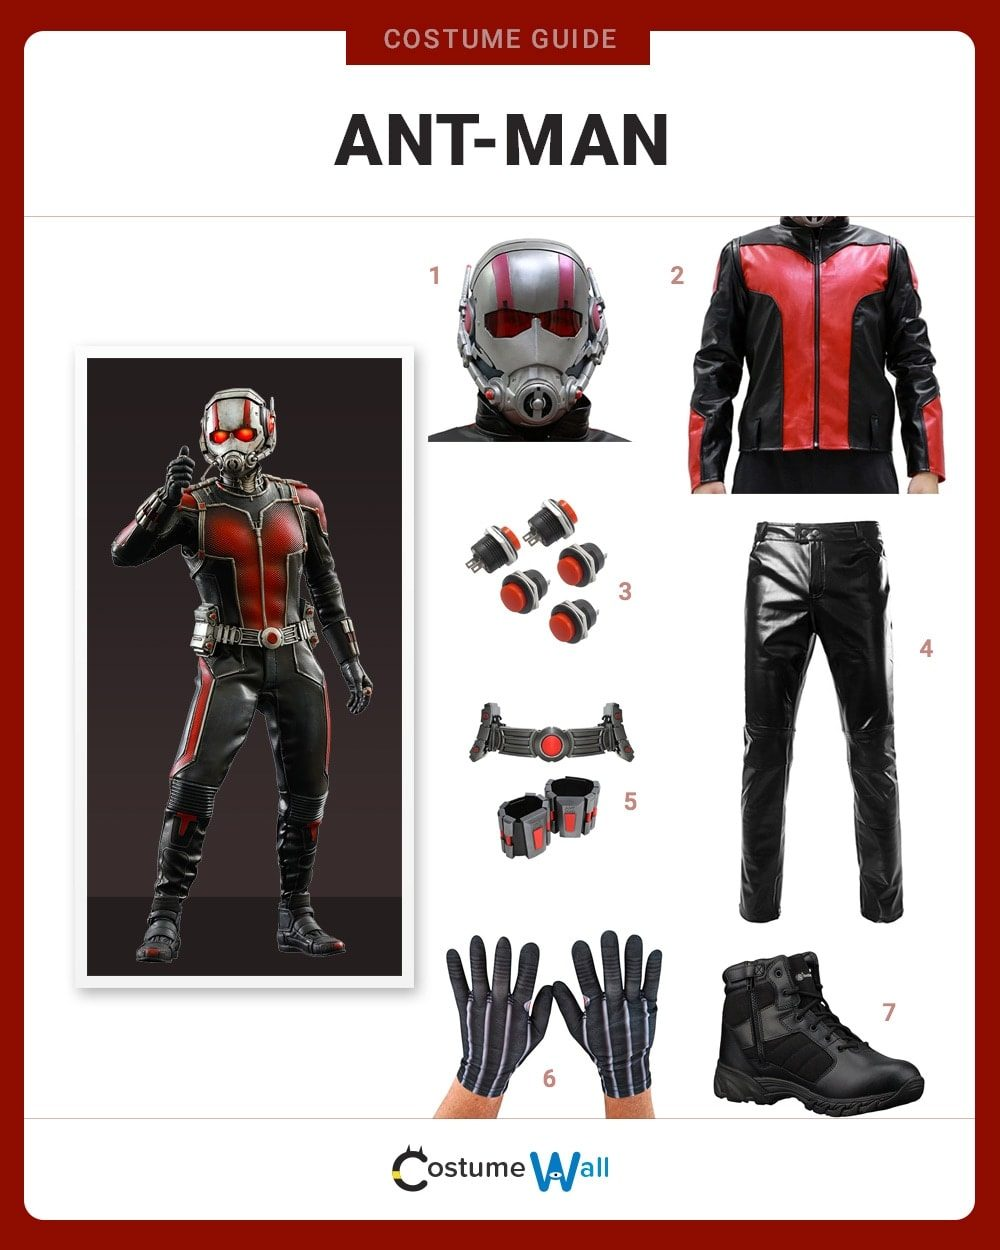 Ant-Man Costume Guide